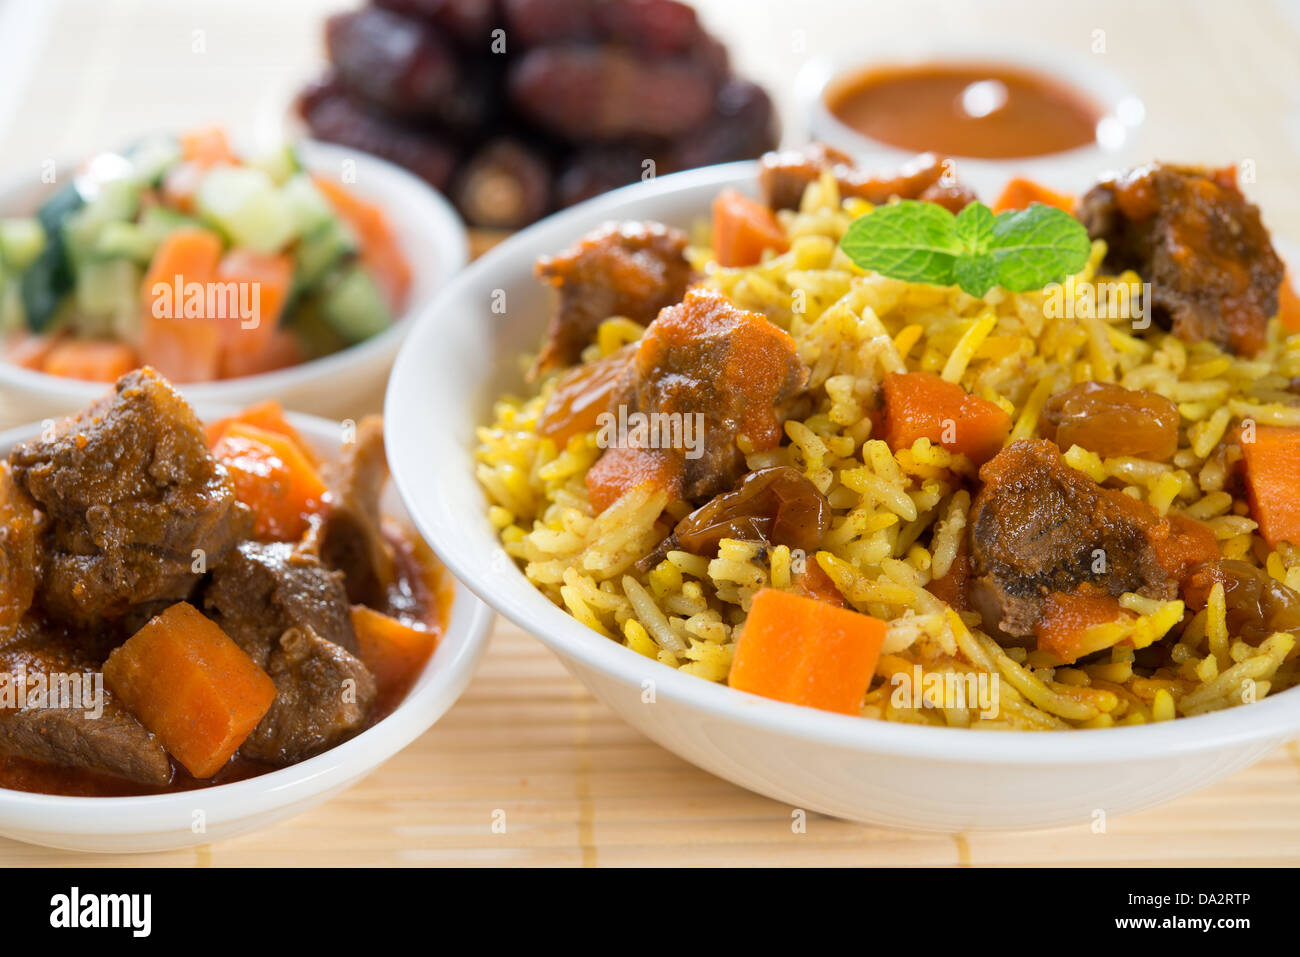 arab rice ramadan food in middle east usually served with